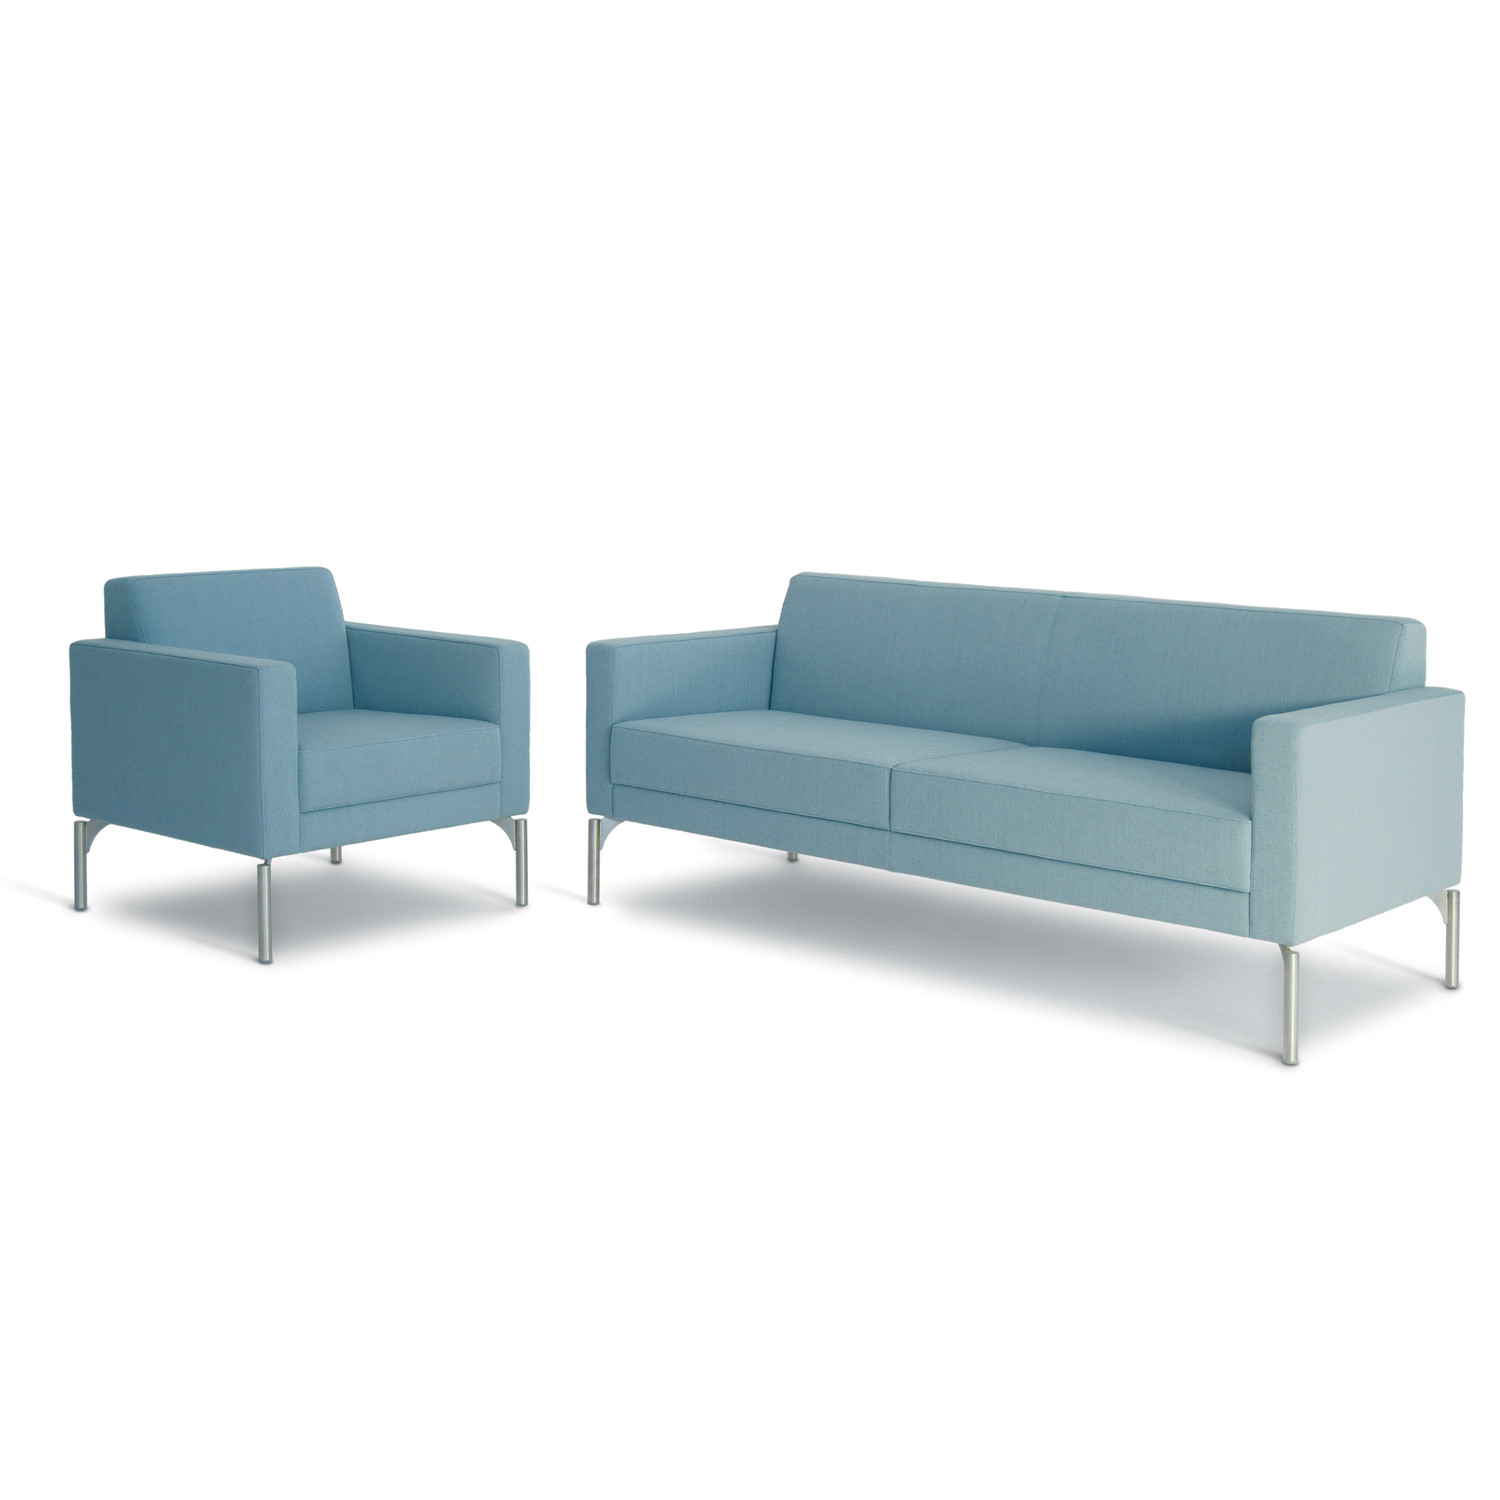 HM35 Armchair and Sofa